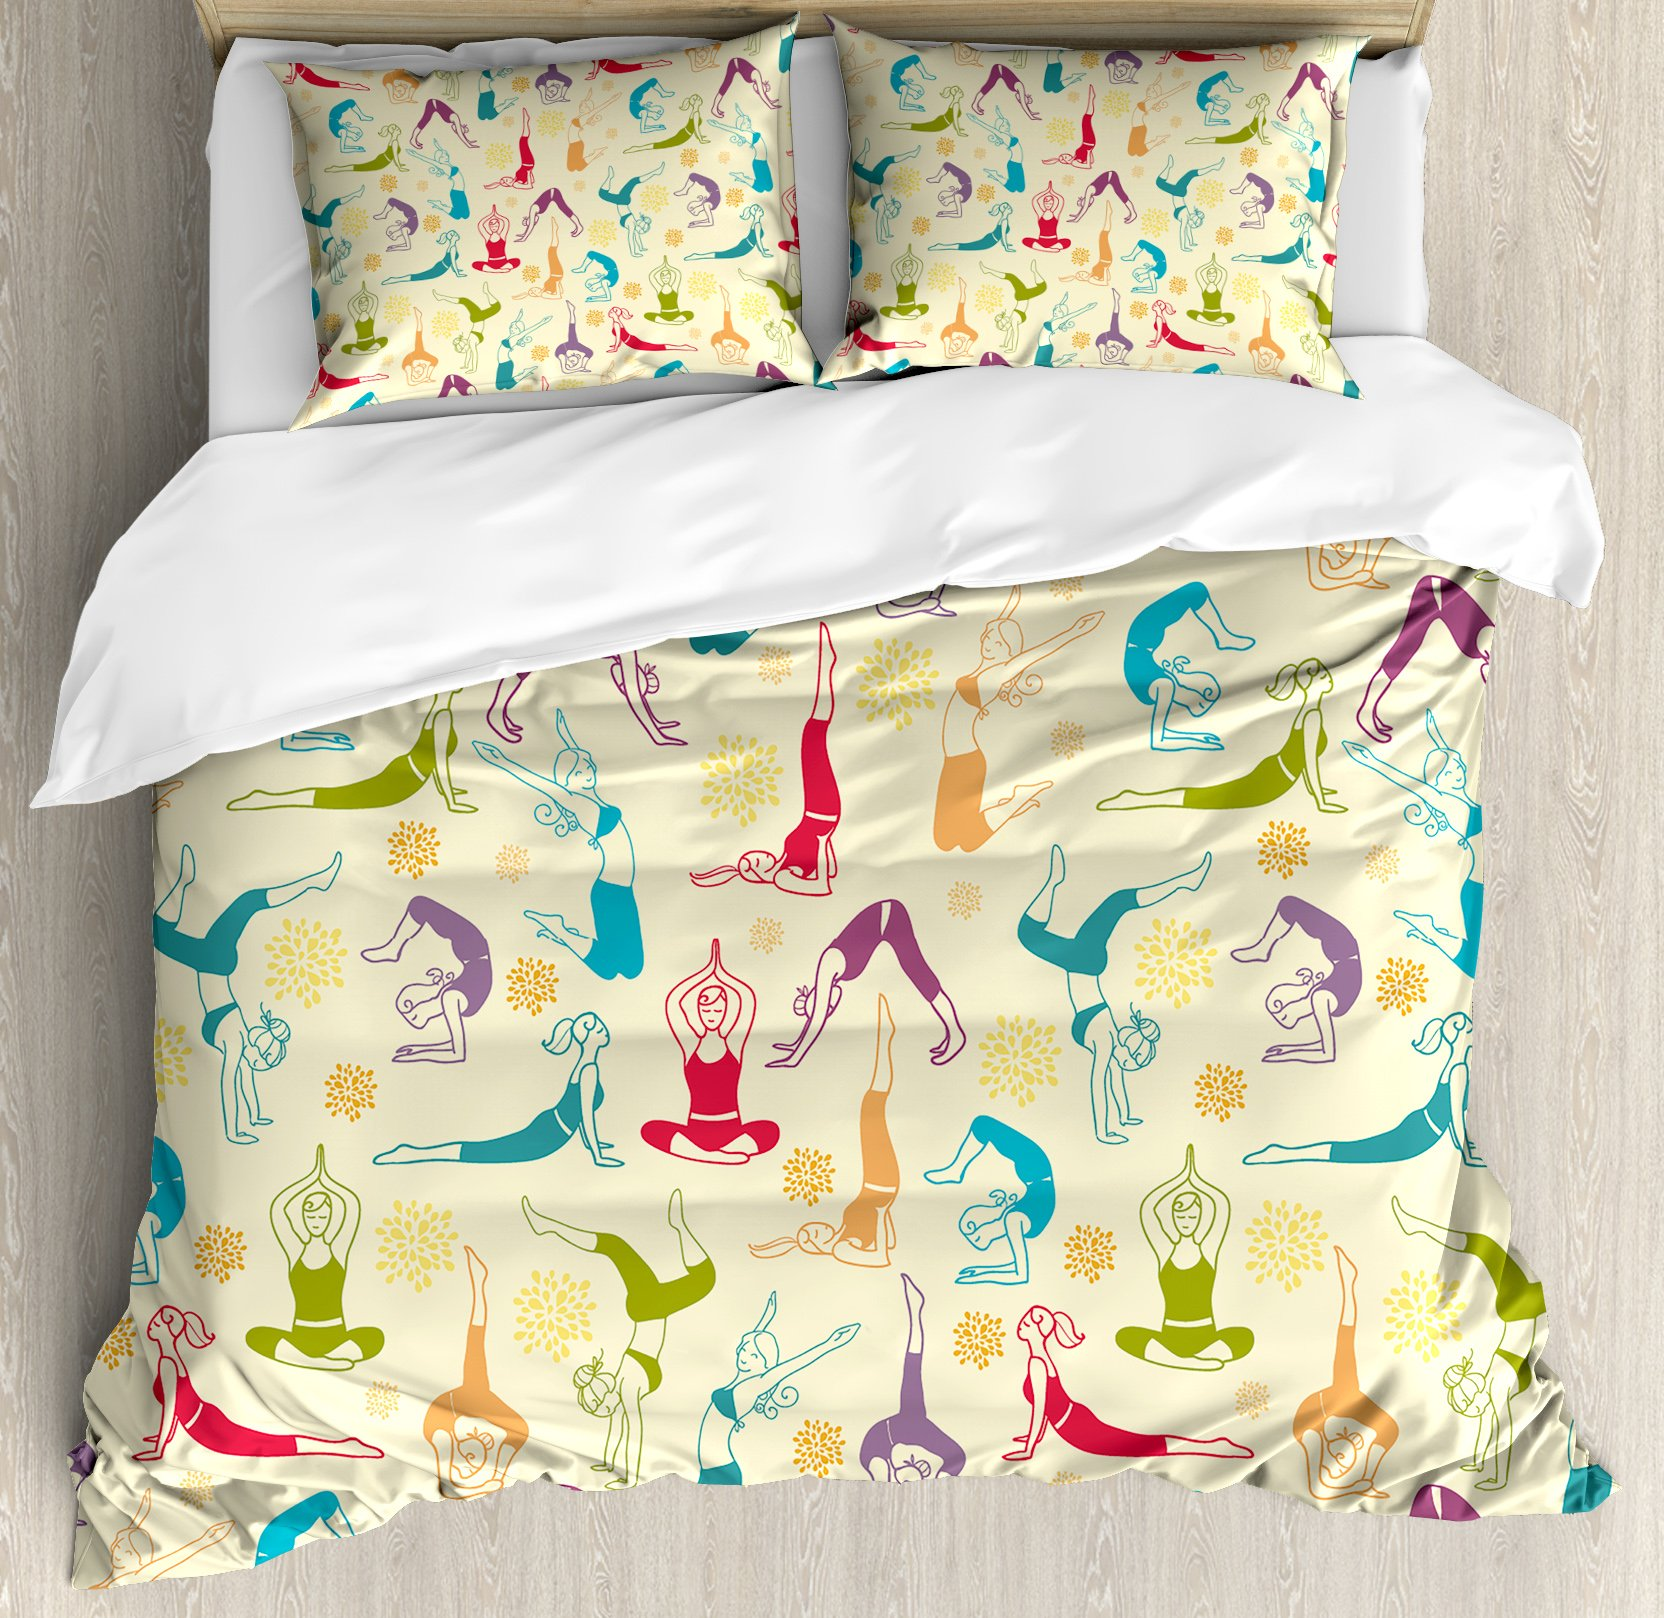 Doodle Queen Size Duvet Cover Set by Lunarable, Workout Fitness Girls in Different Yoga Pilates Positions Health Wellness Gymnastics, Decorative 3 Piece Bedding Set with 2 Pillow Shams, Multicolor by Lunarable (Image #1)